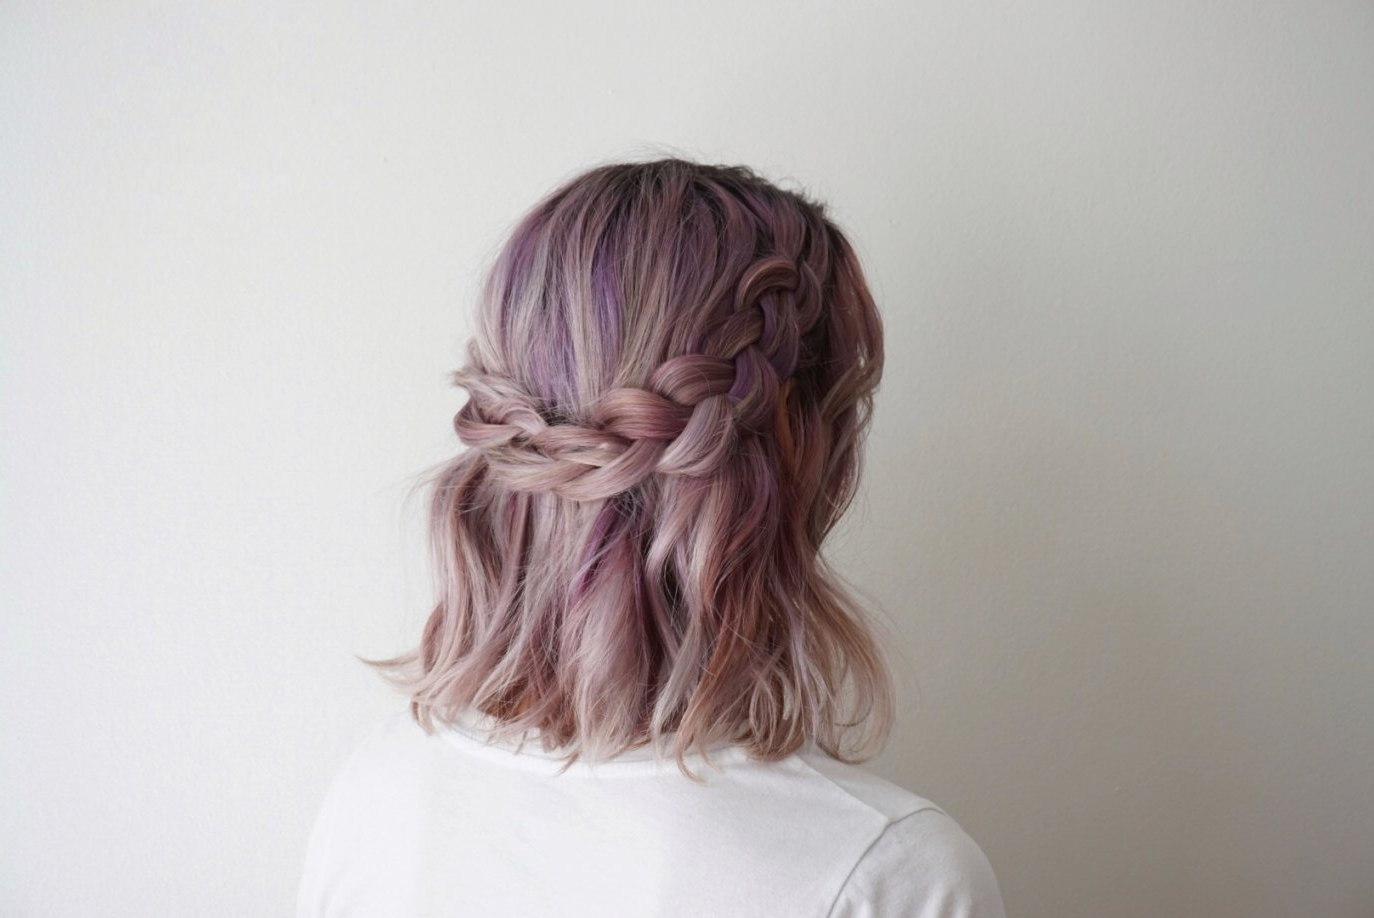 Most Recently Released Shoulder Length Hair Braided Hairstyles With Regard To 5 Ways To Wear Shoulder Length Hair (View 2 of 15)